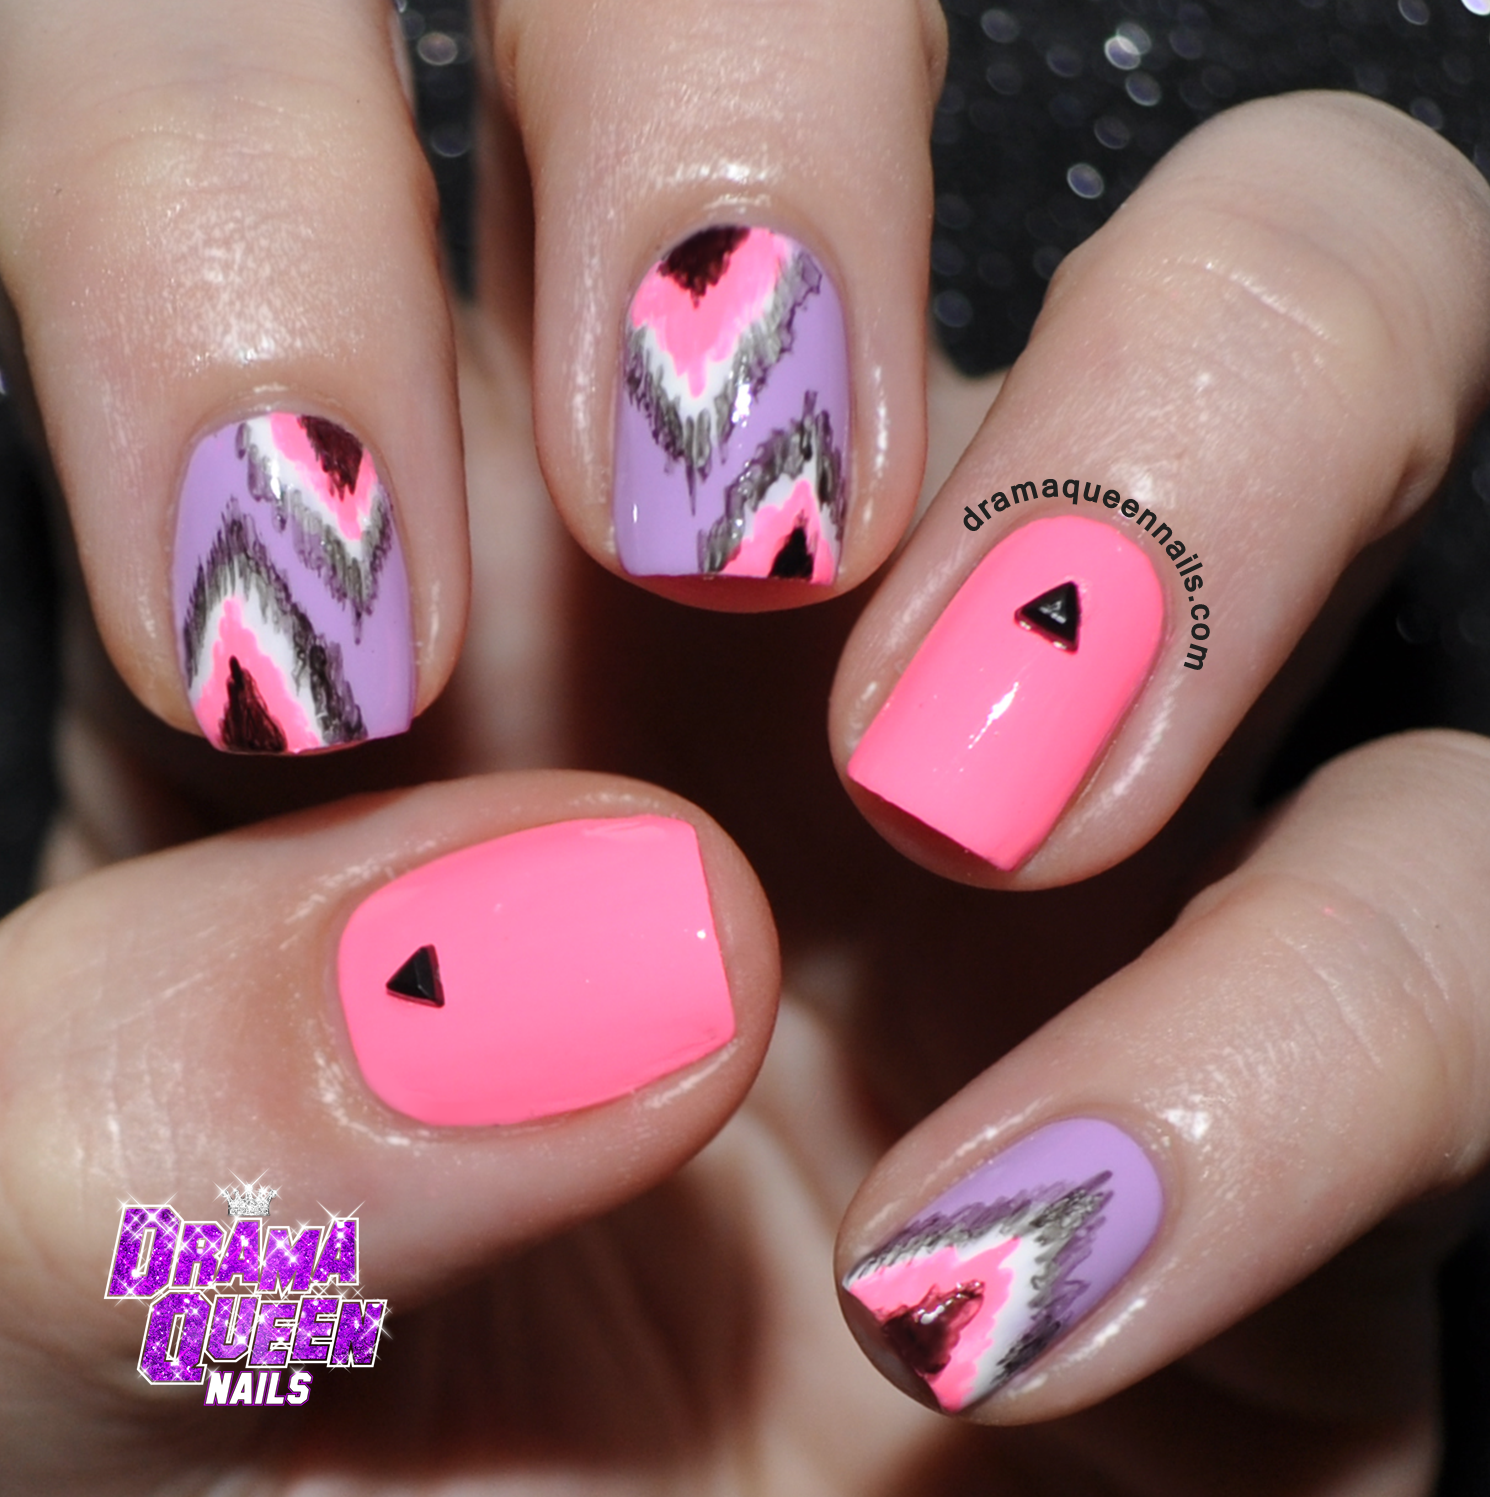 Drama queen nails nail art round up nail art round up prinsesfo Images